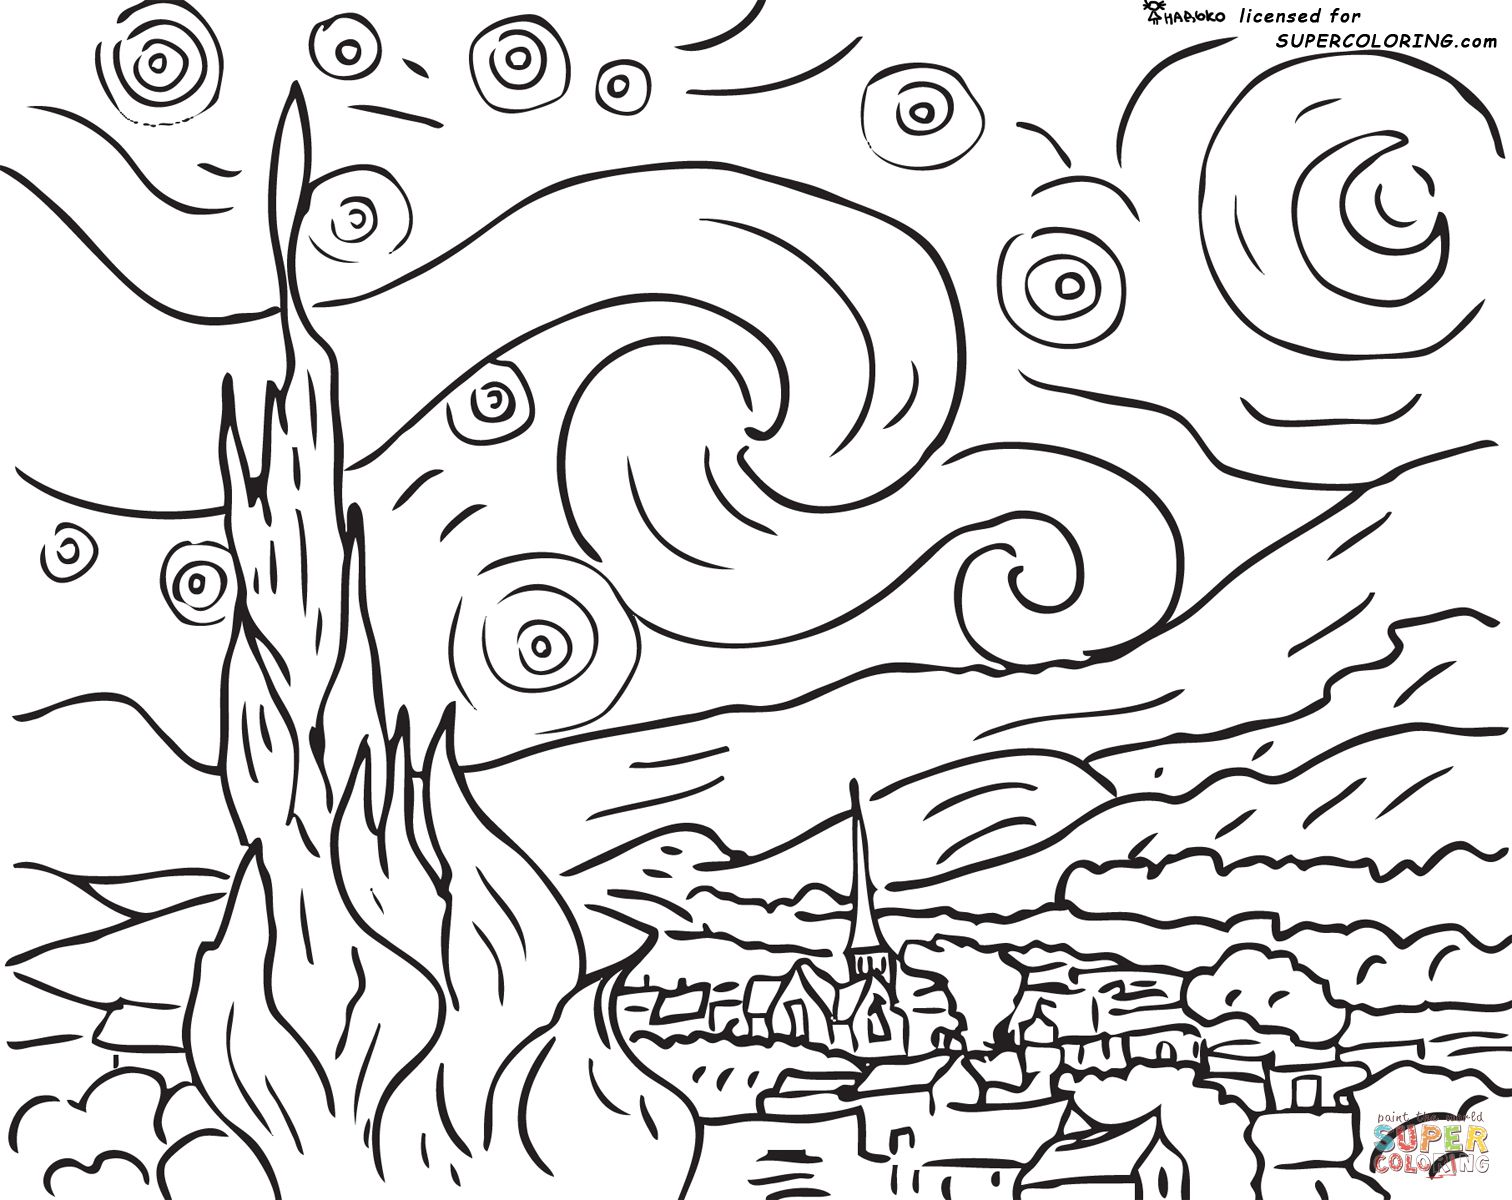 Starry Night By Vincent Van Gogh Coloring Page Supercoloring Com Auction Idea Grid This Into The Numb Van Gogh Coloring Starry Night Van Gogh Van Gogh Art